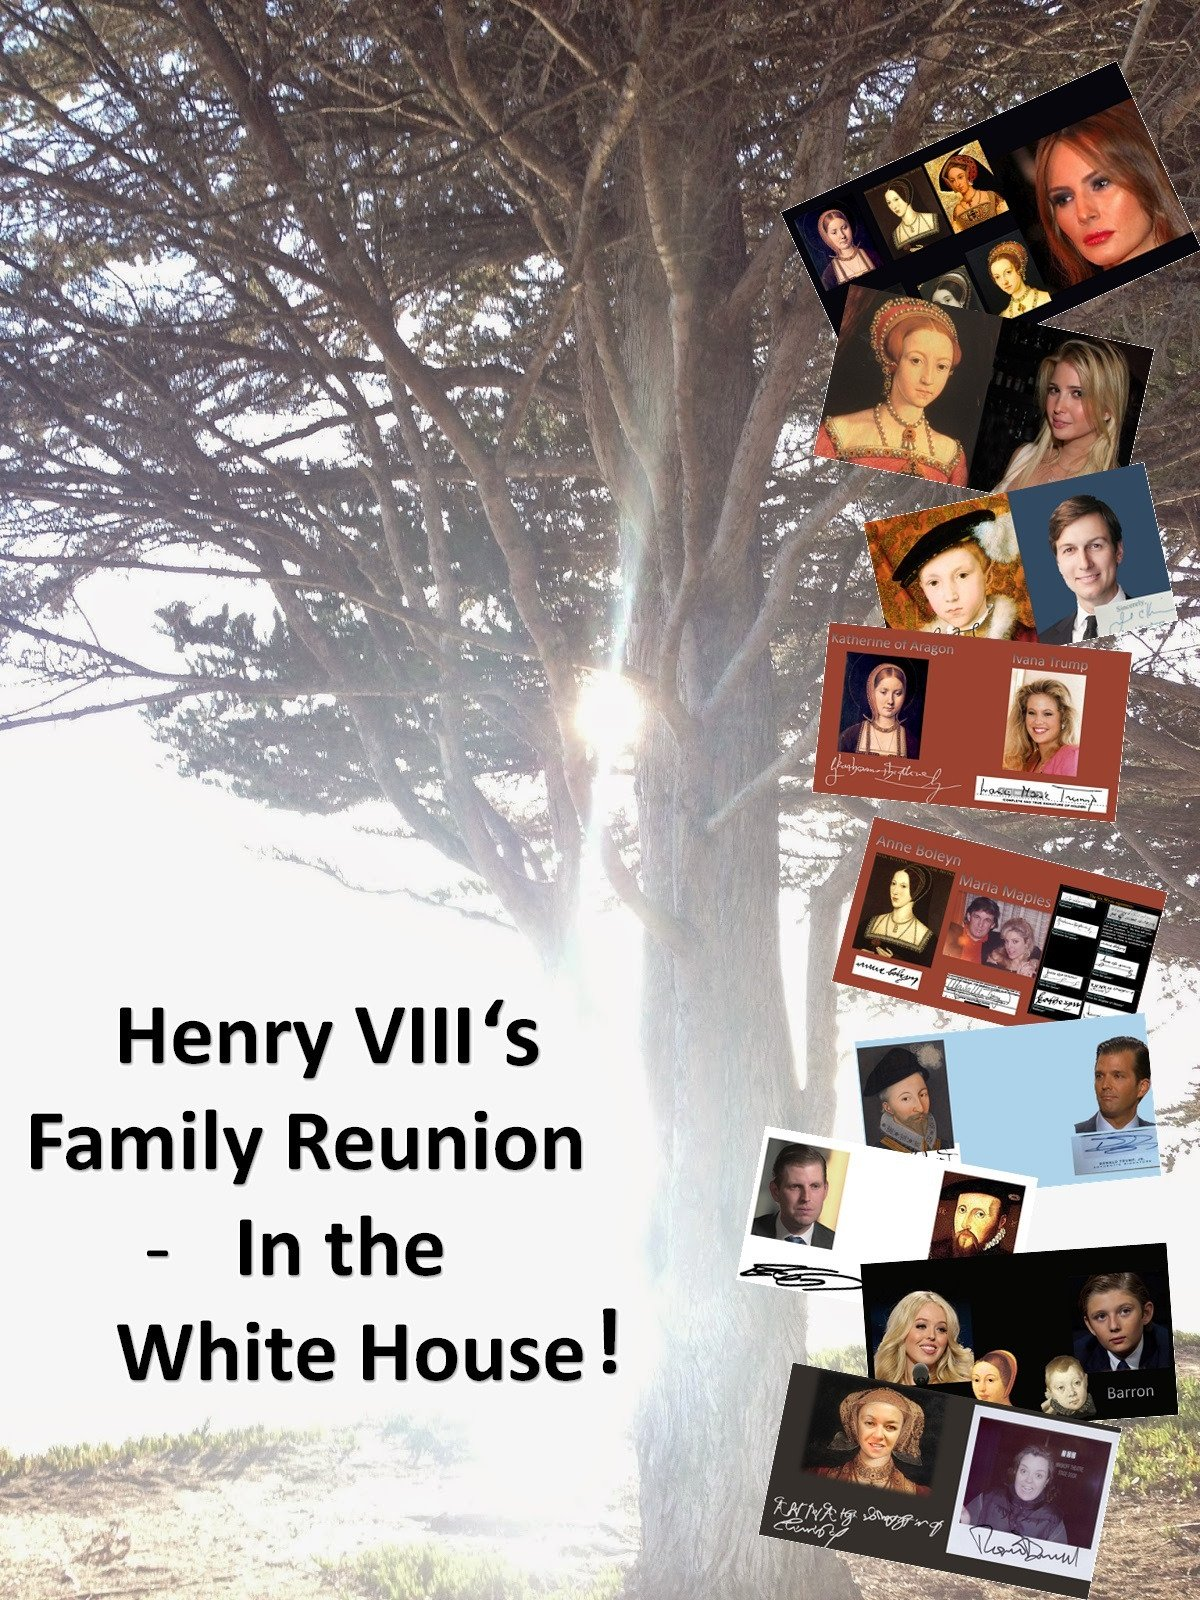 Henry VIII's family reunion